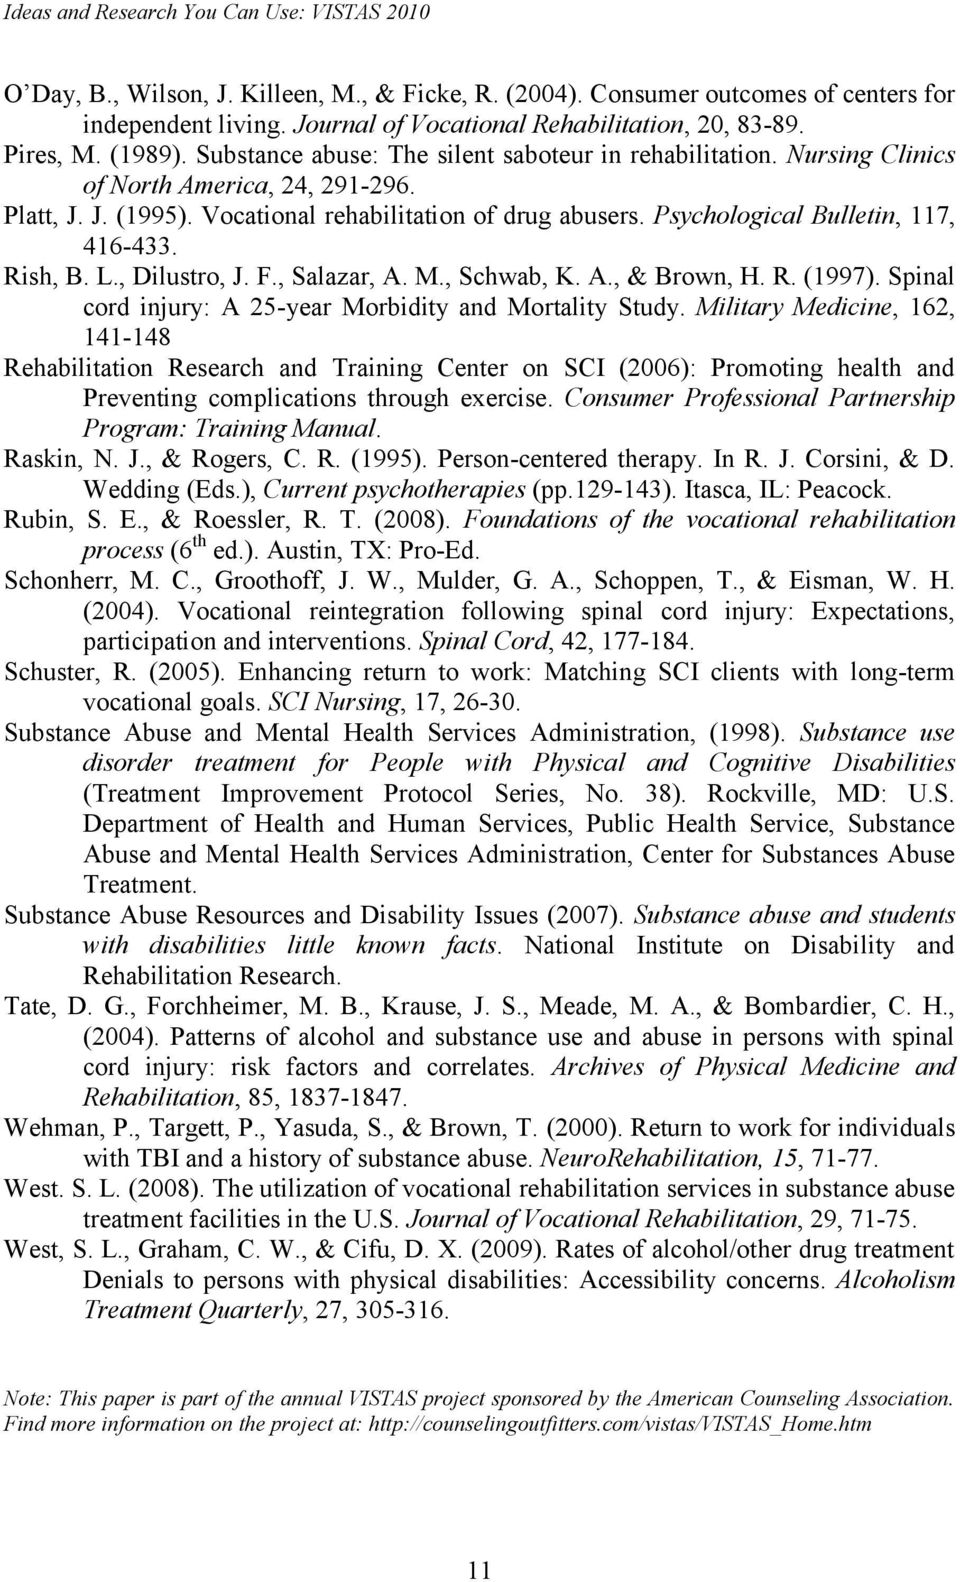 Psychological Bulletin, 117, 416-433. Rish, B. L., Dilustro, J. F., Salazar, A. M., Schwab, K. A., & Brown, H. R. (1997). Spinal cord injury: A 25-year Morbidity and Mortality Study.